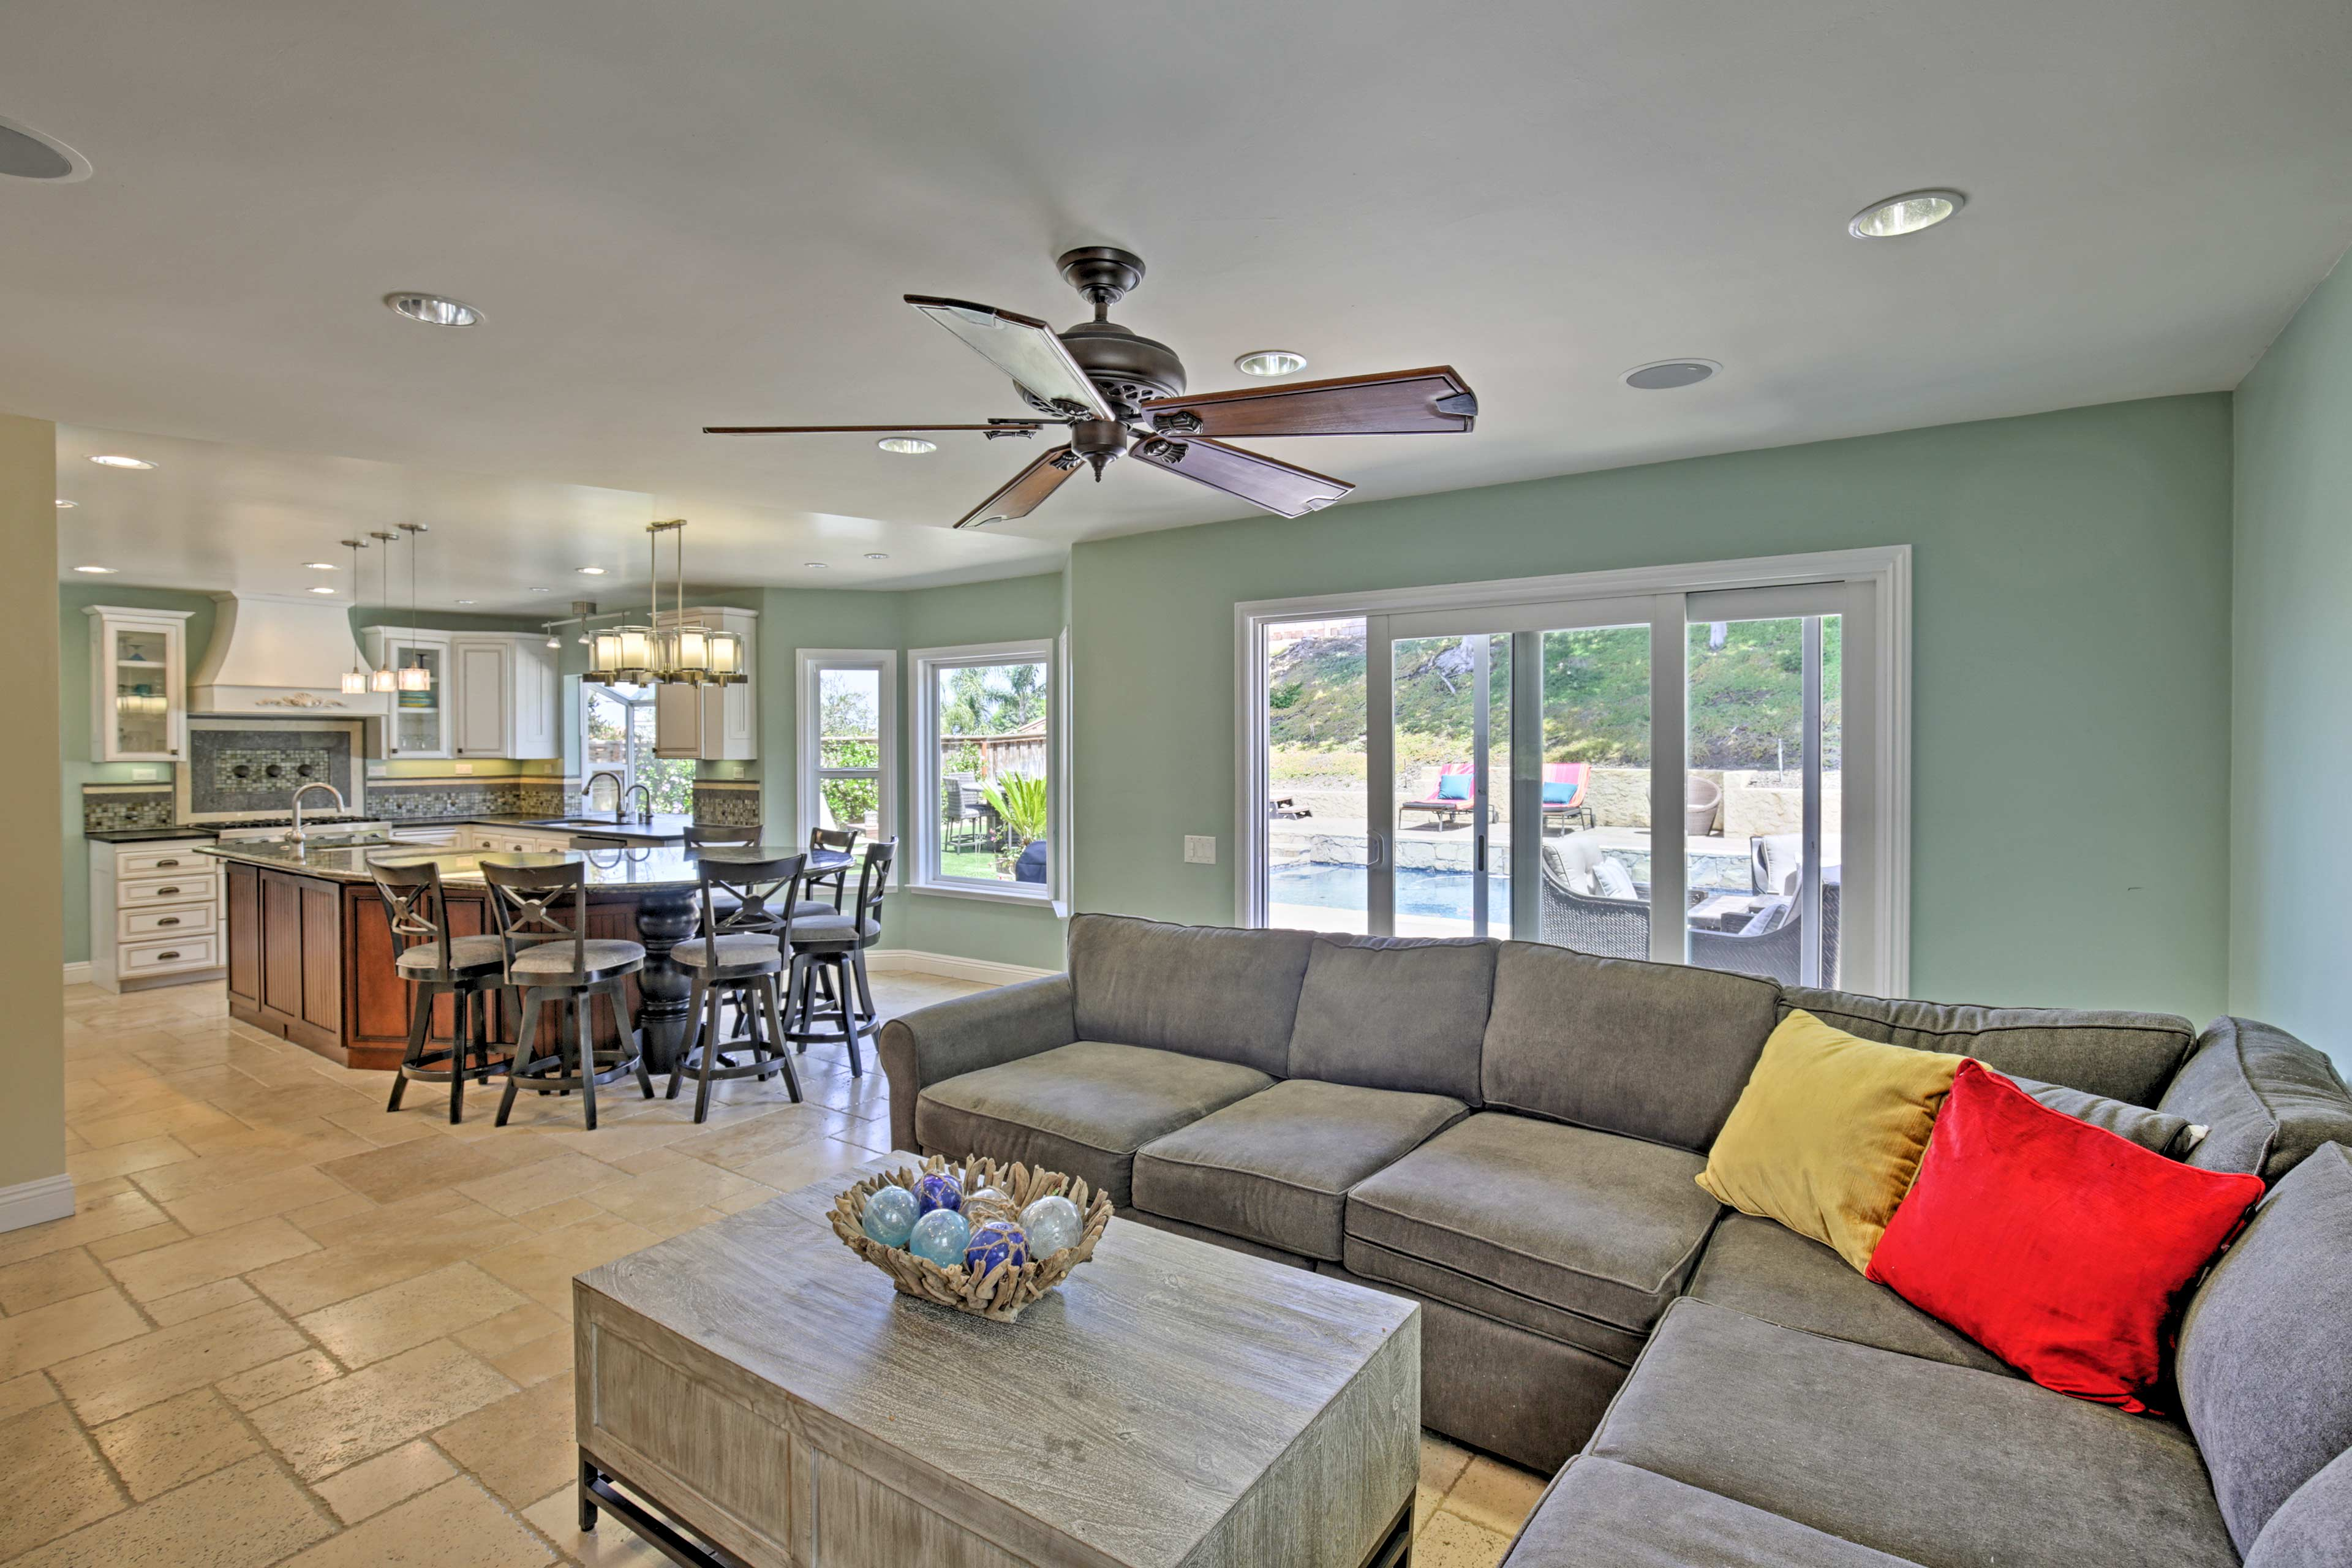 Inside, you'll find all of the comforts of home, plus the amenities you desire!